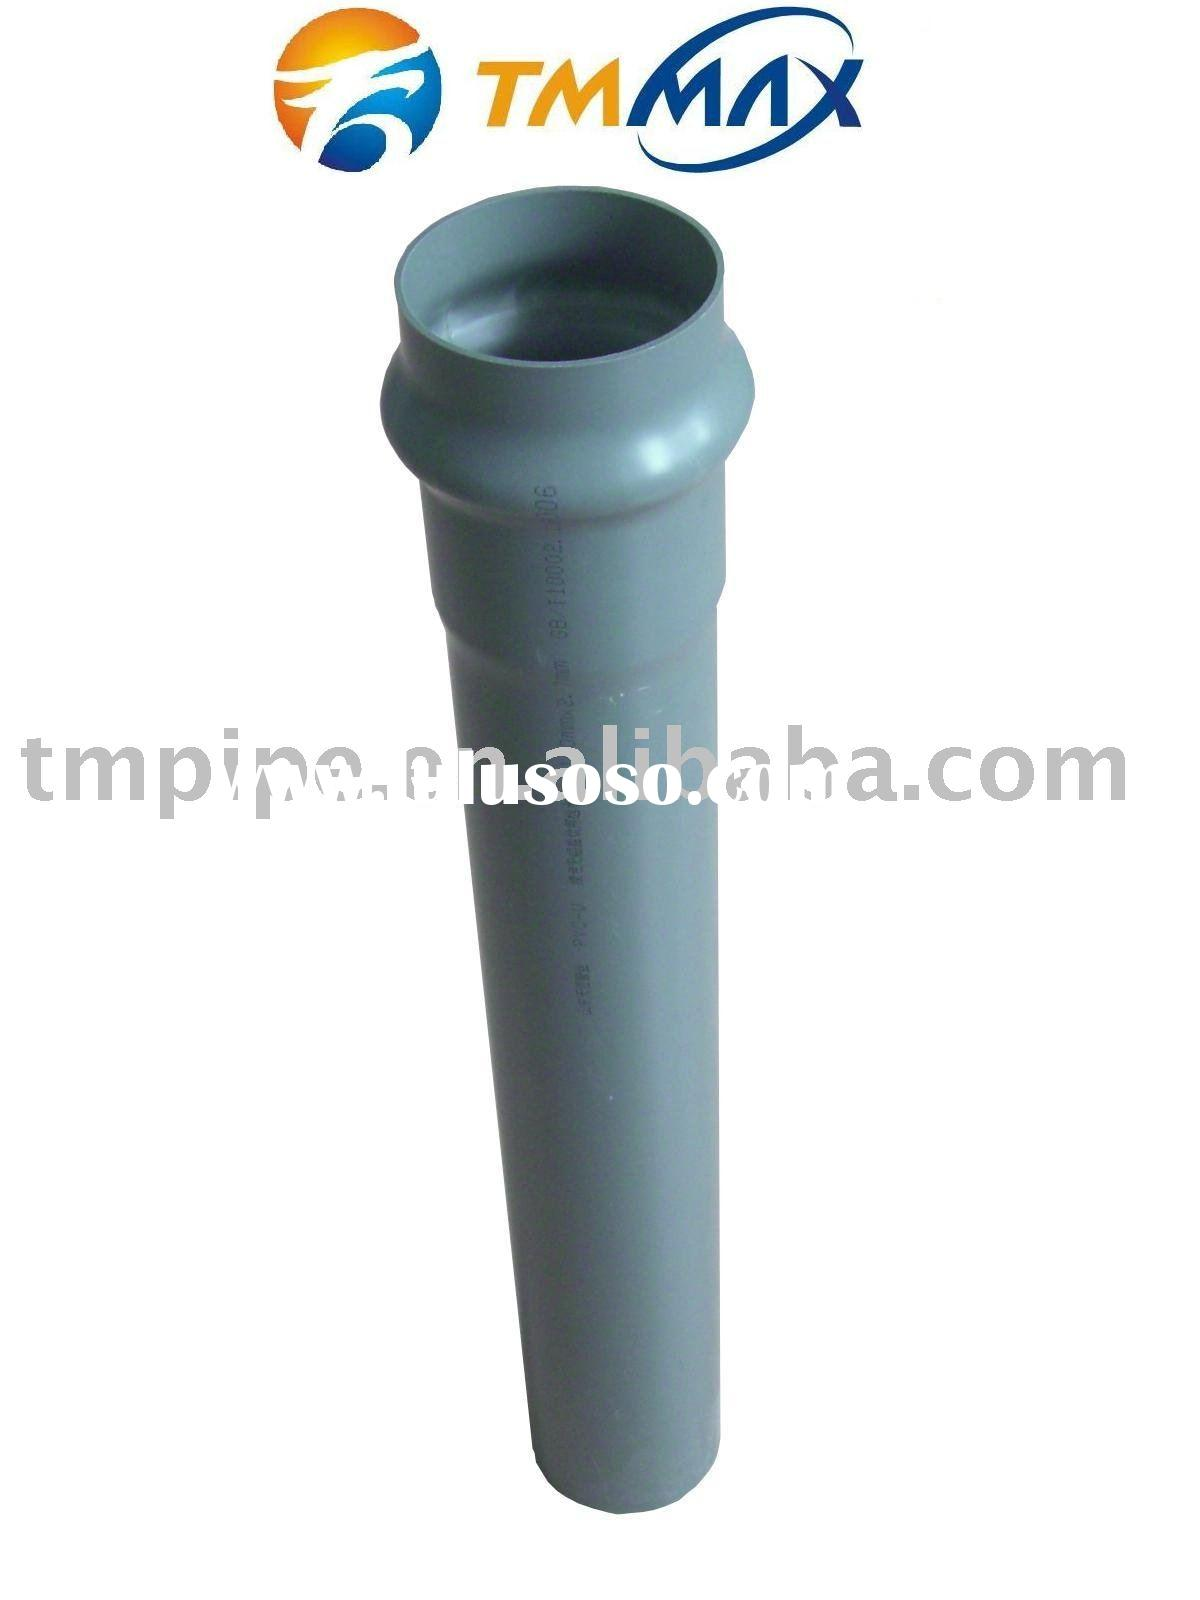 Pipe tube pvc pipe tube pvc manufacturers in for Plastic water pipe